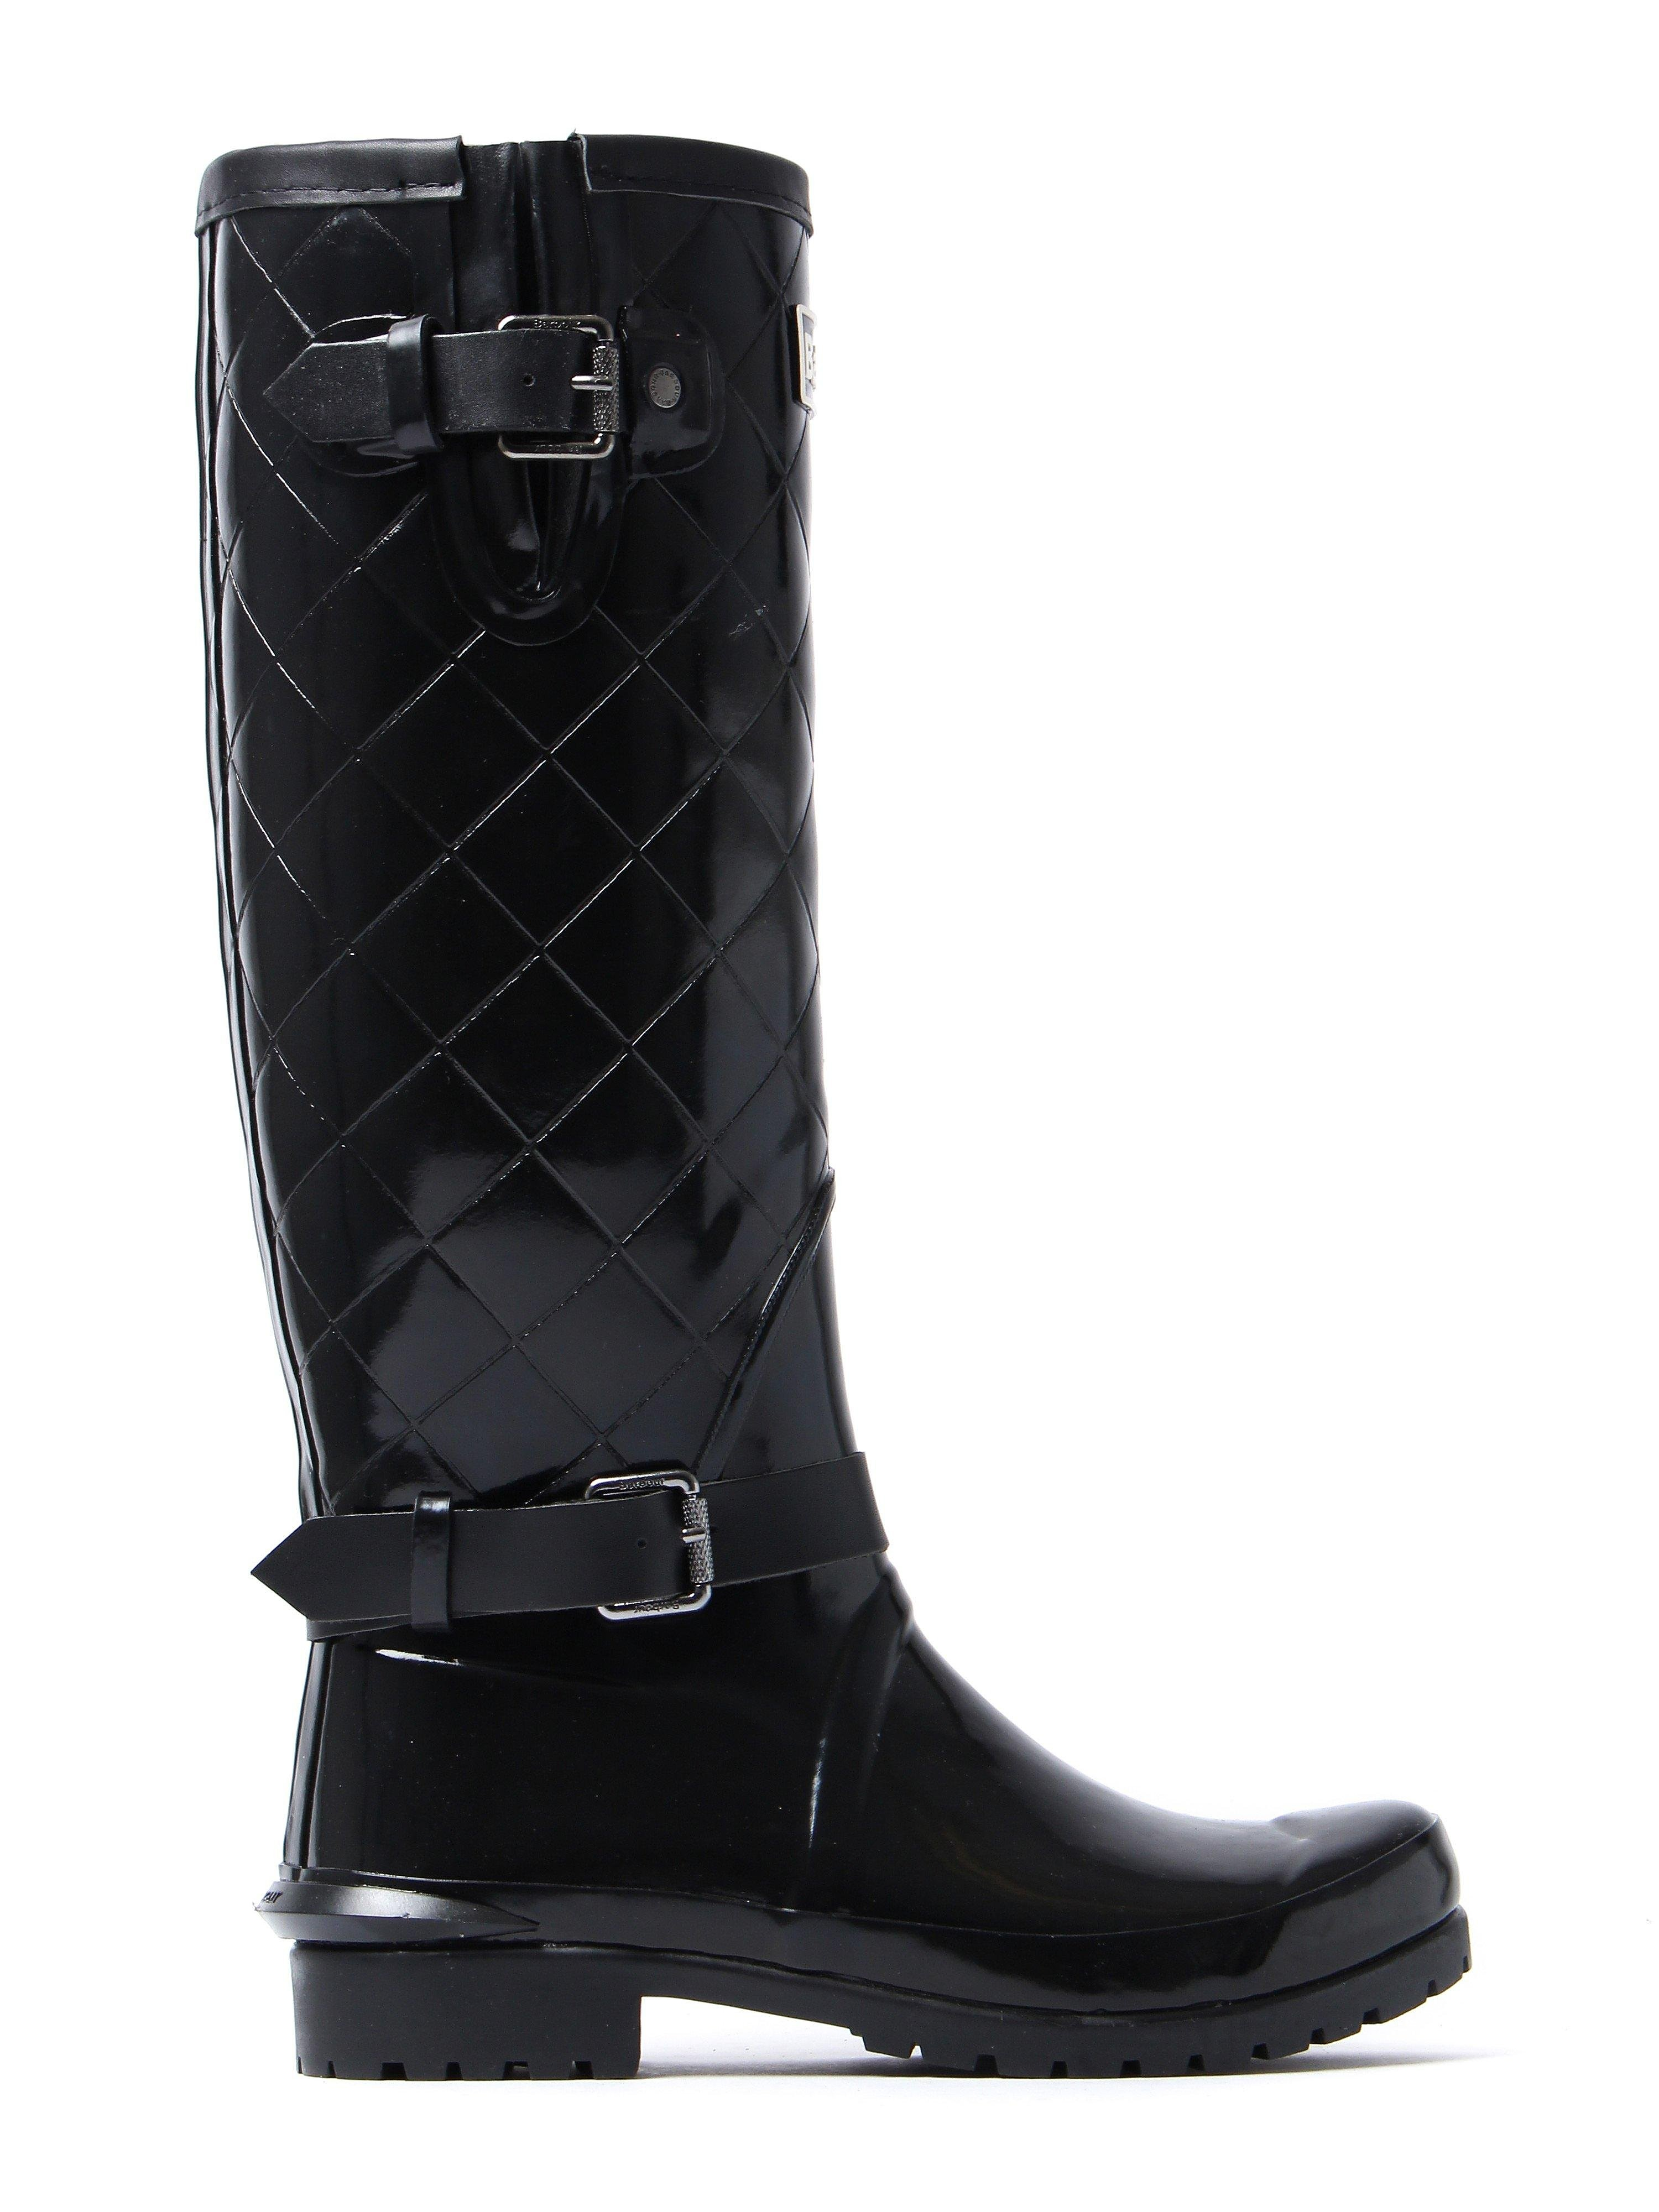 Barbour Women's Lindisfarne Wellington Boots - Black